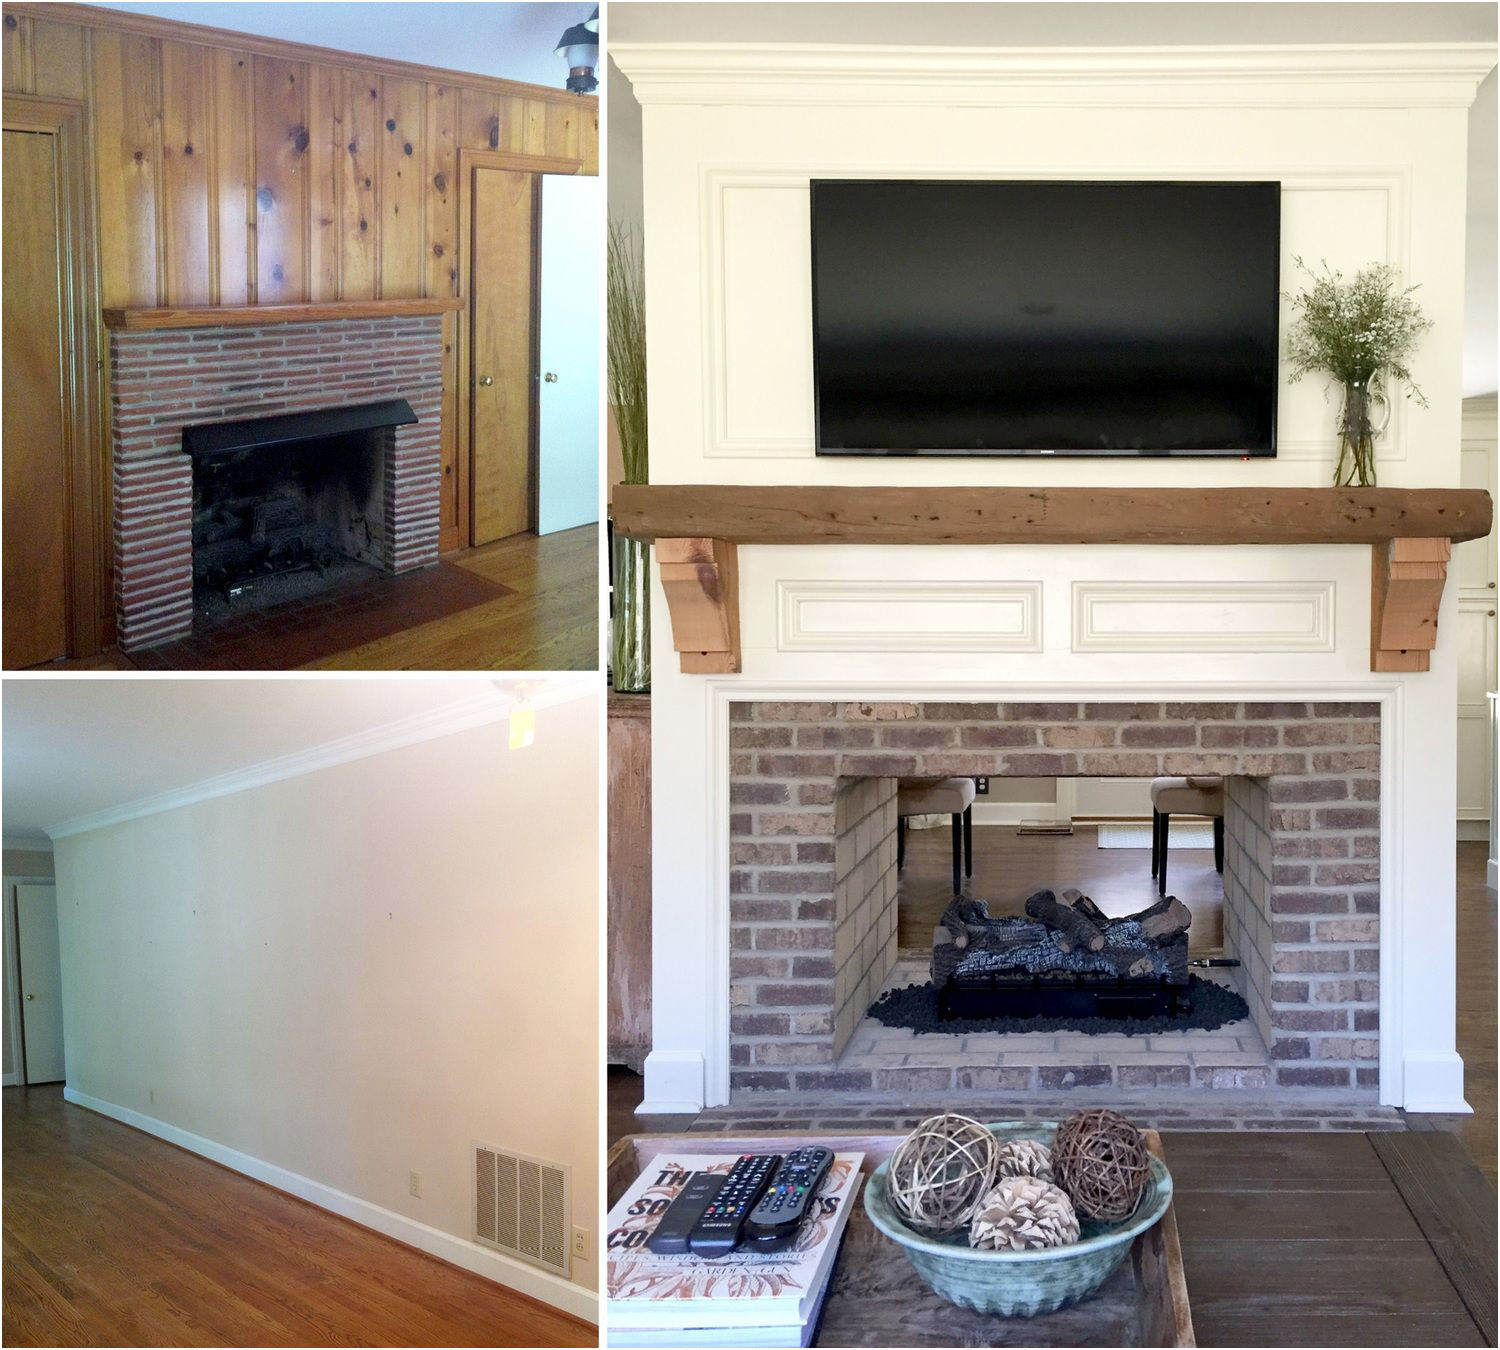 Fireplace Remodels before and after Awesome Fireplace Renovation Converting A Single Sided Fireplace to